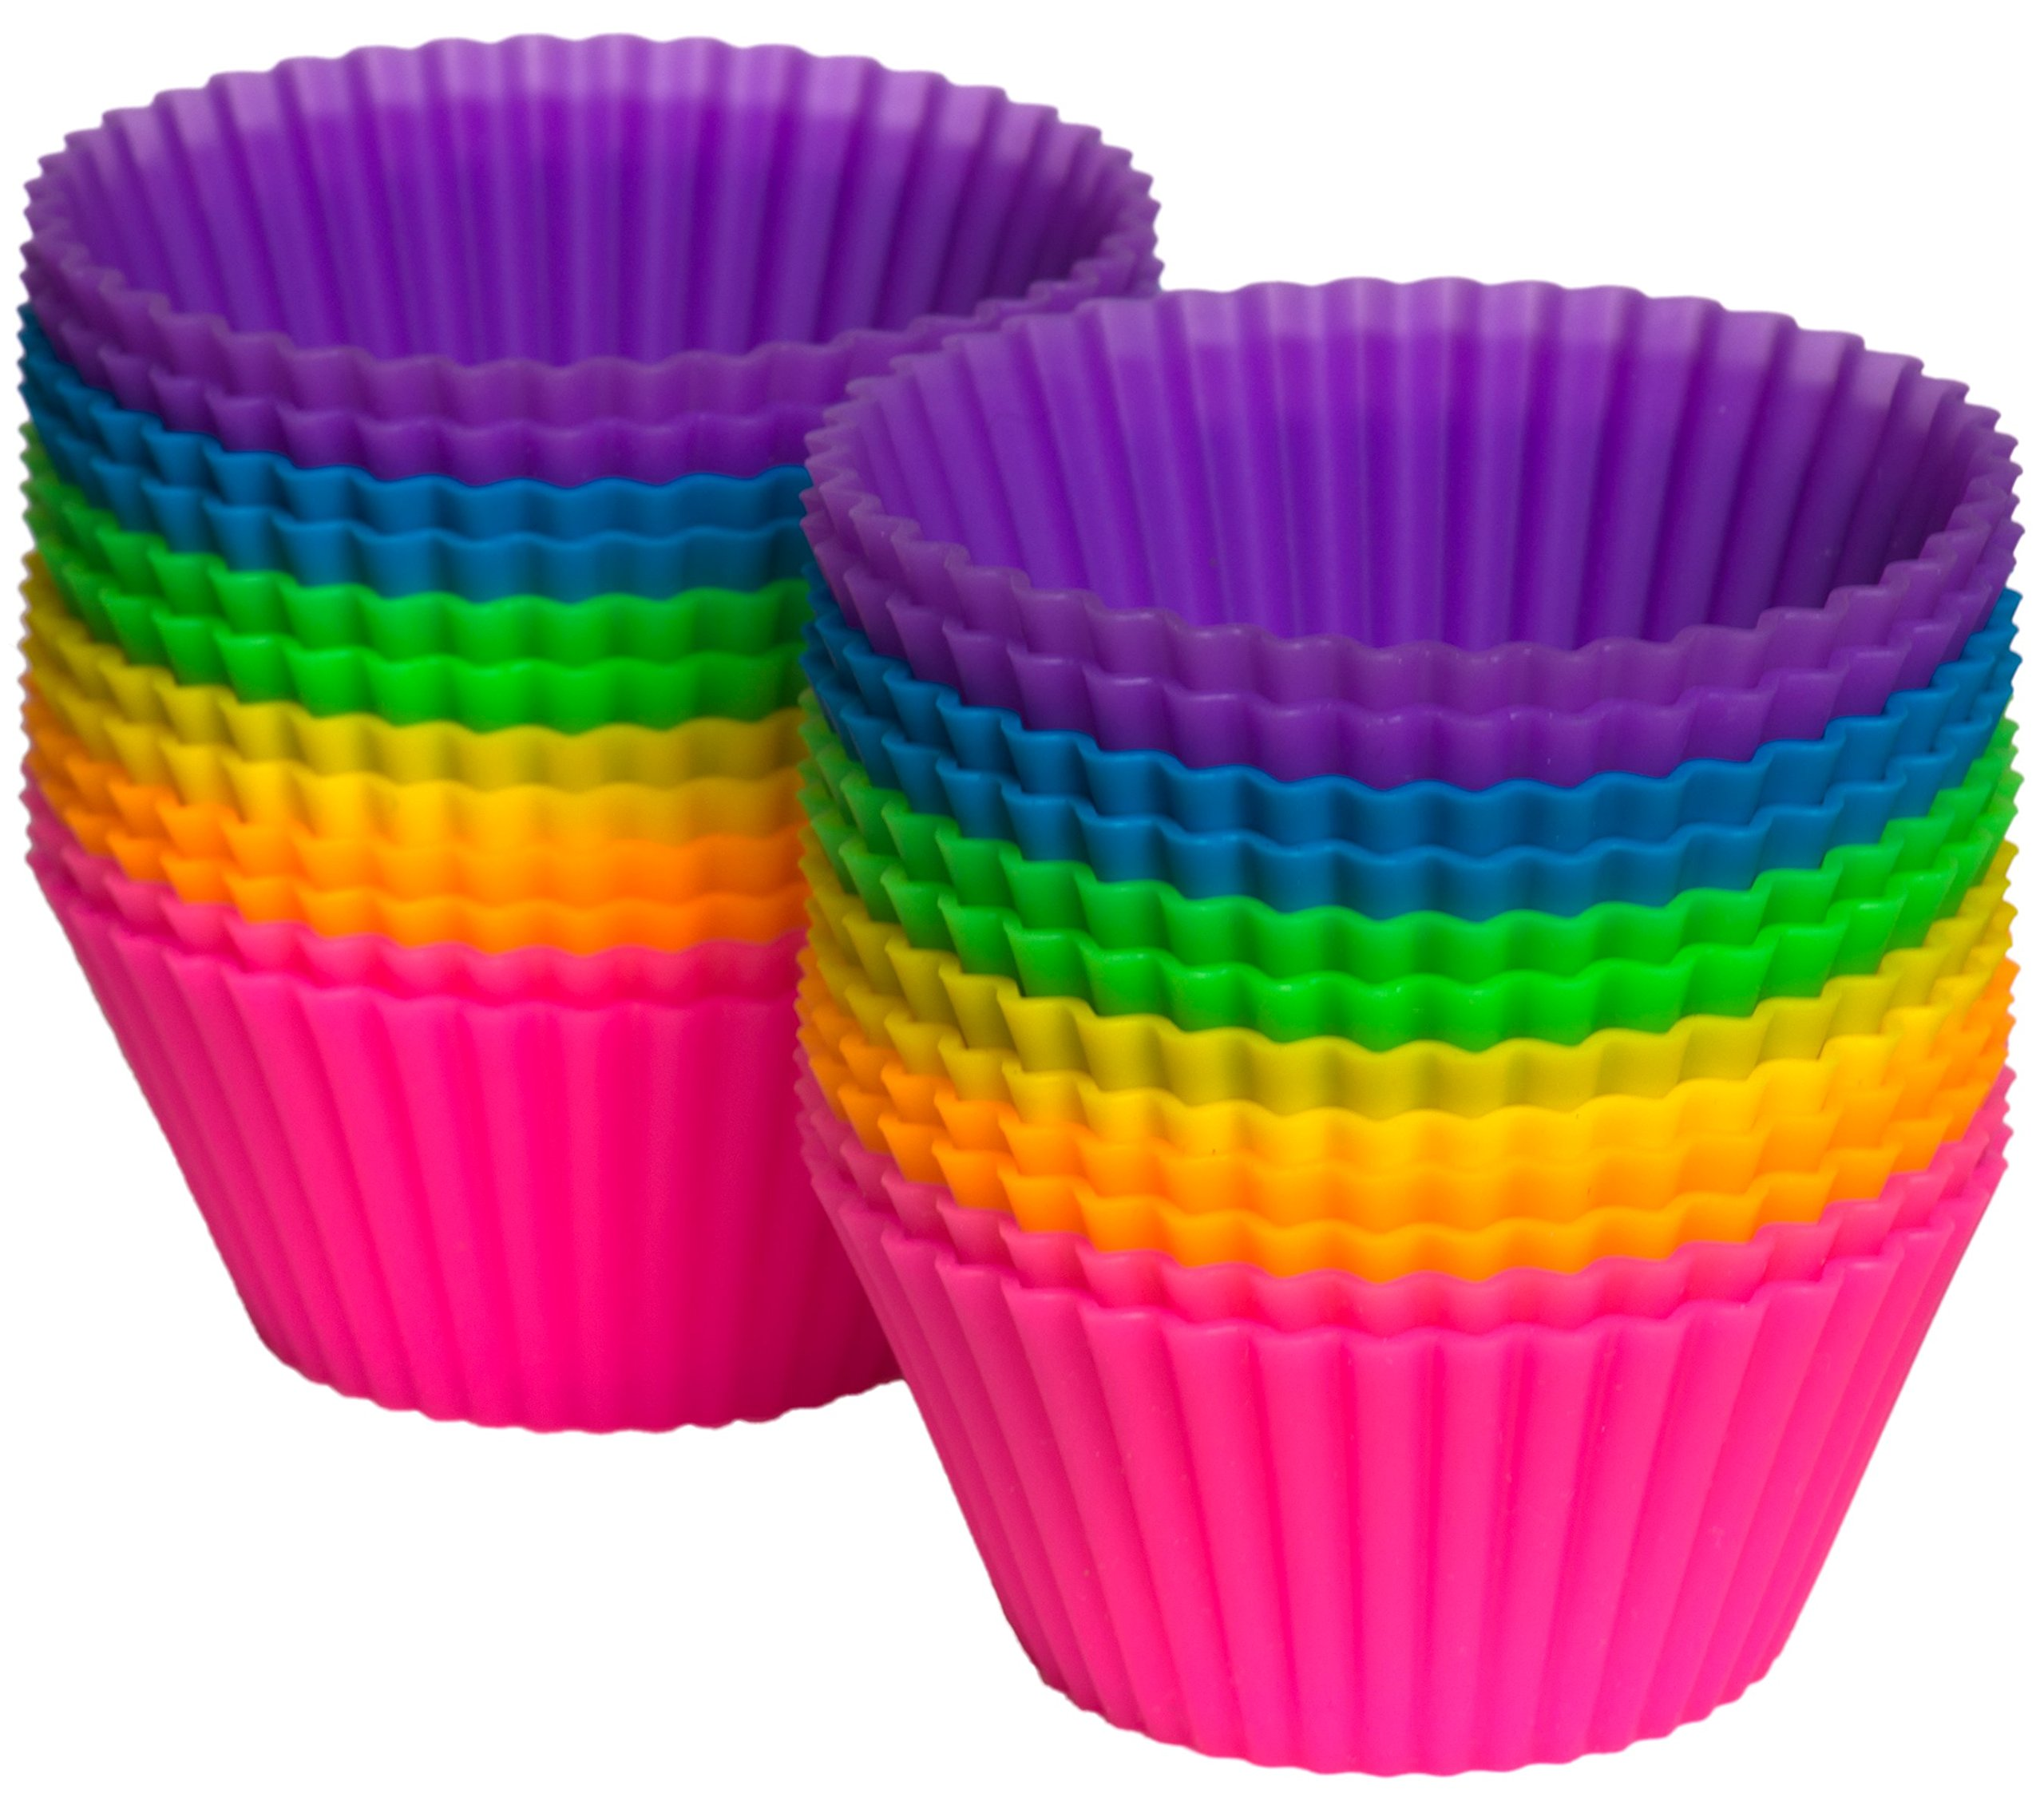 Pantry Elements Silicone Cupcake Liners/Baking Cups, 24-Pack Vibrant Muffin Molds in Storage Jar by Pantry Elements